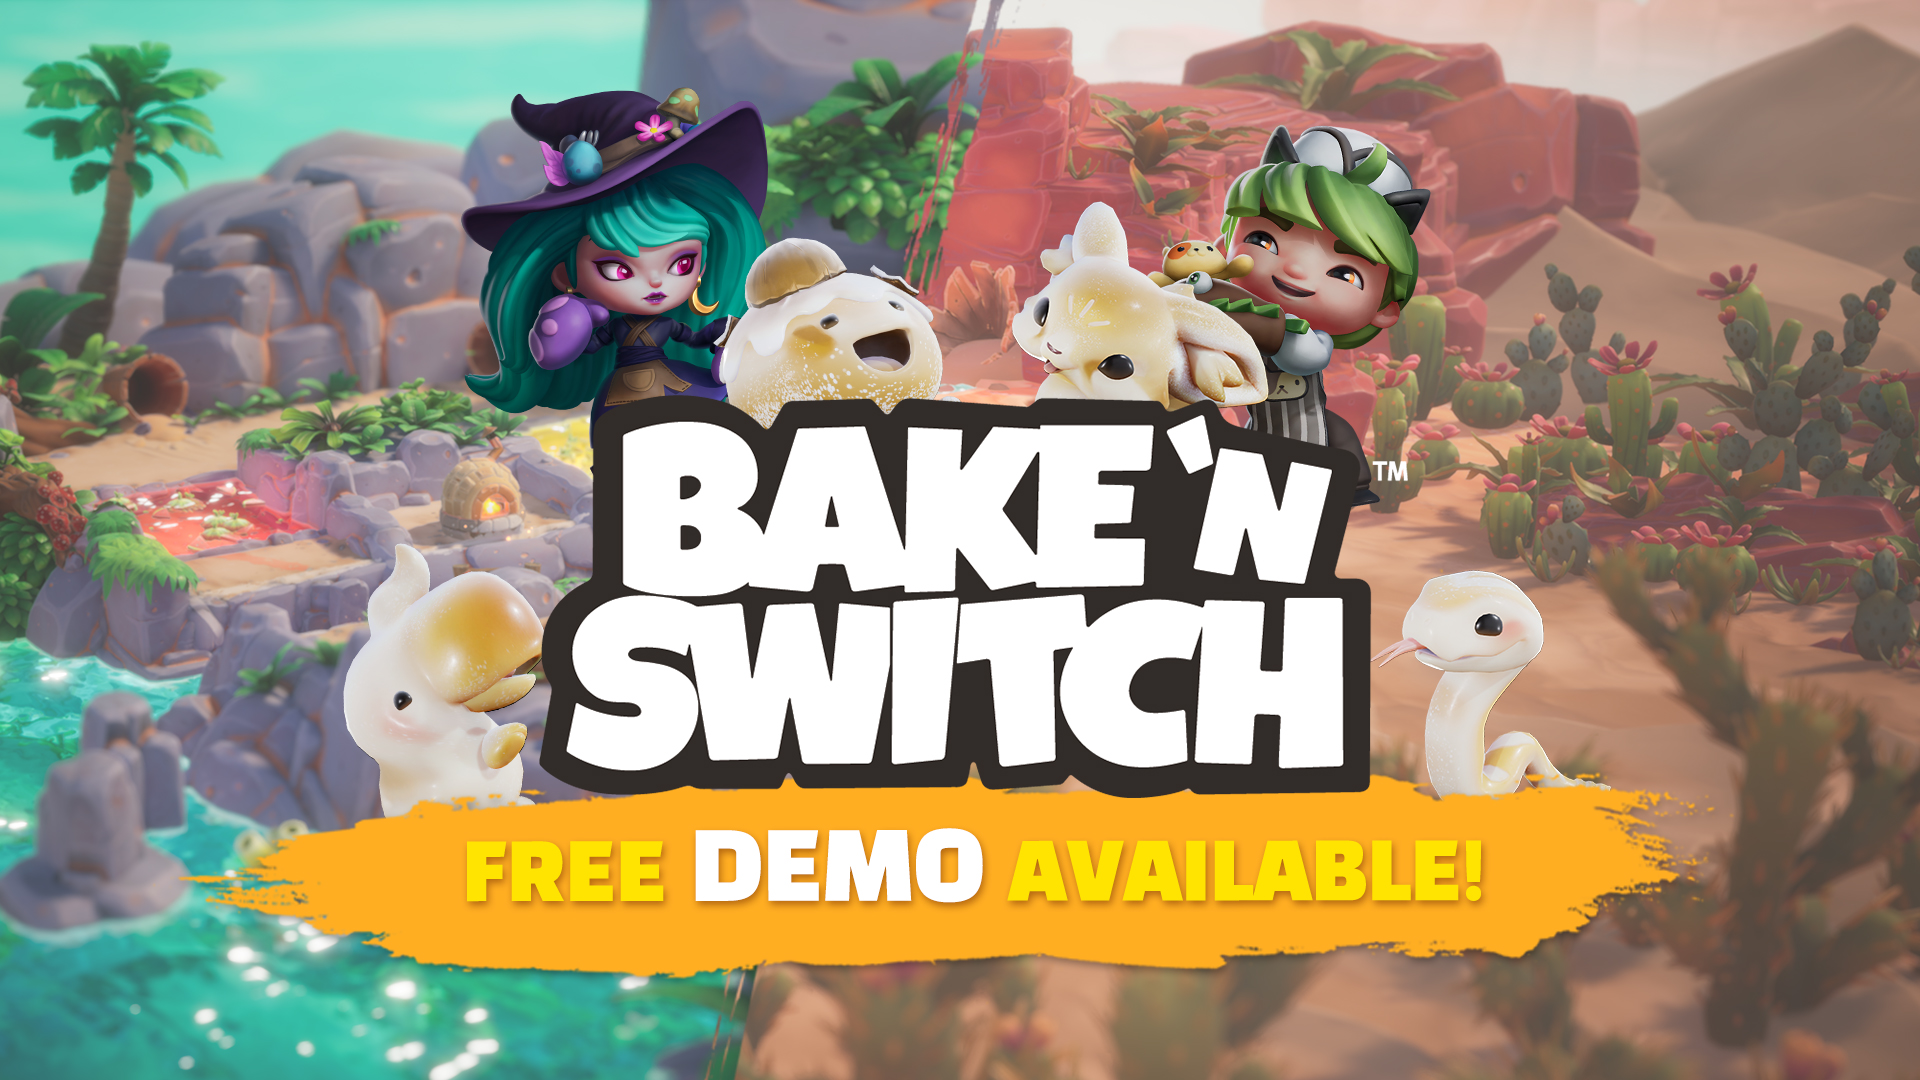 Bake 'n Switch Free Demo Available